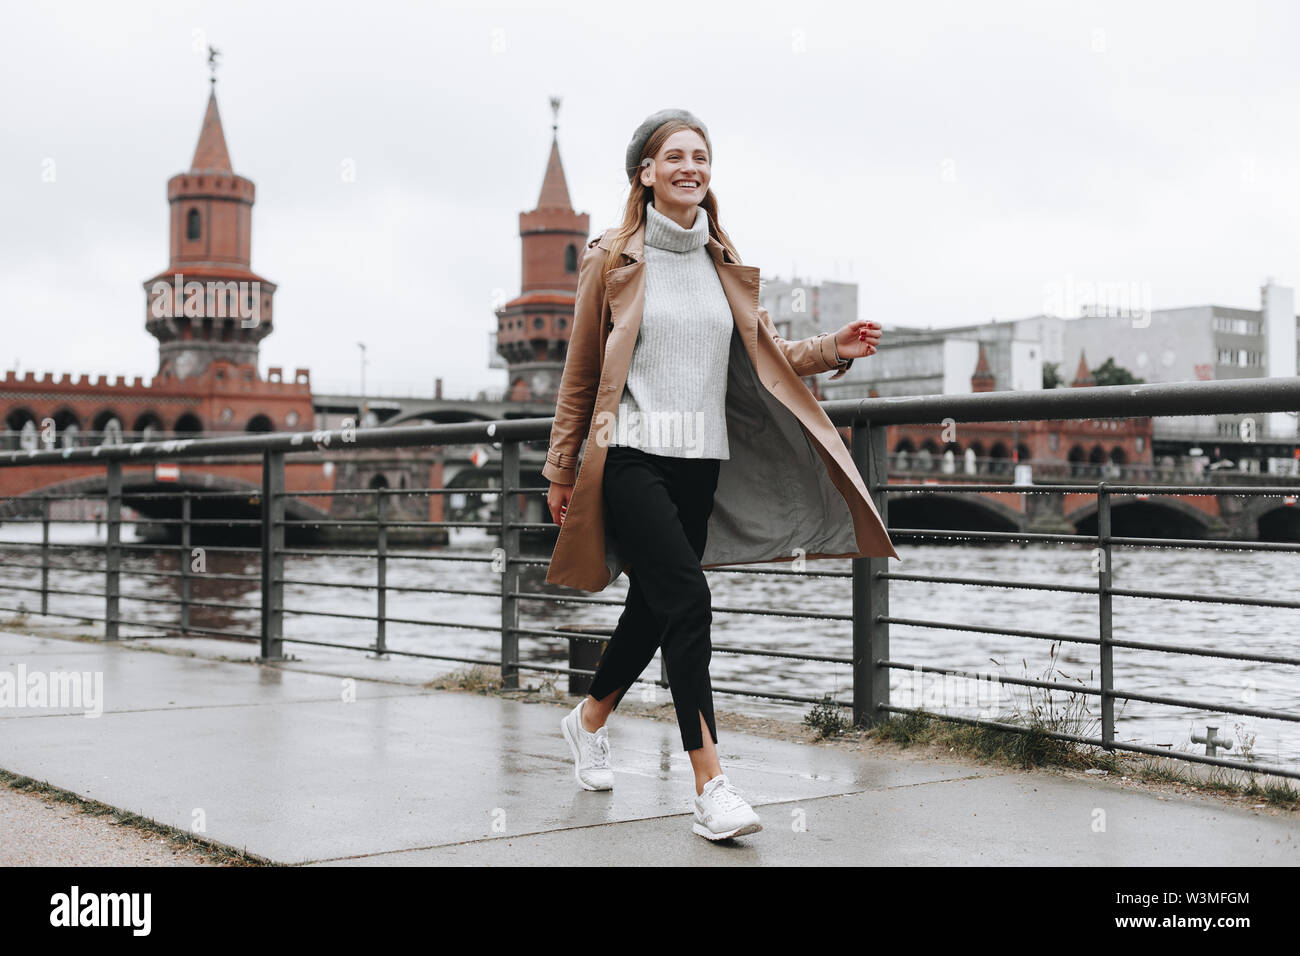 Young woman walking by river in Berlin, Germany - Stock Image